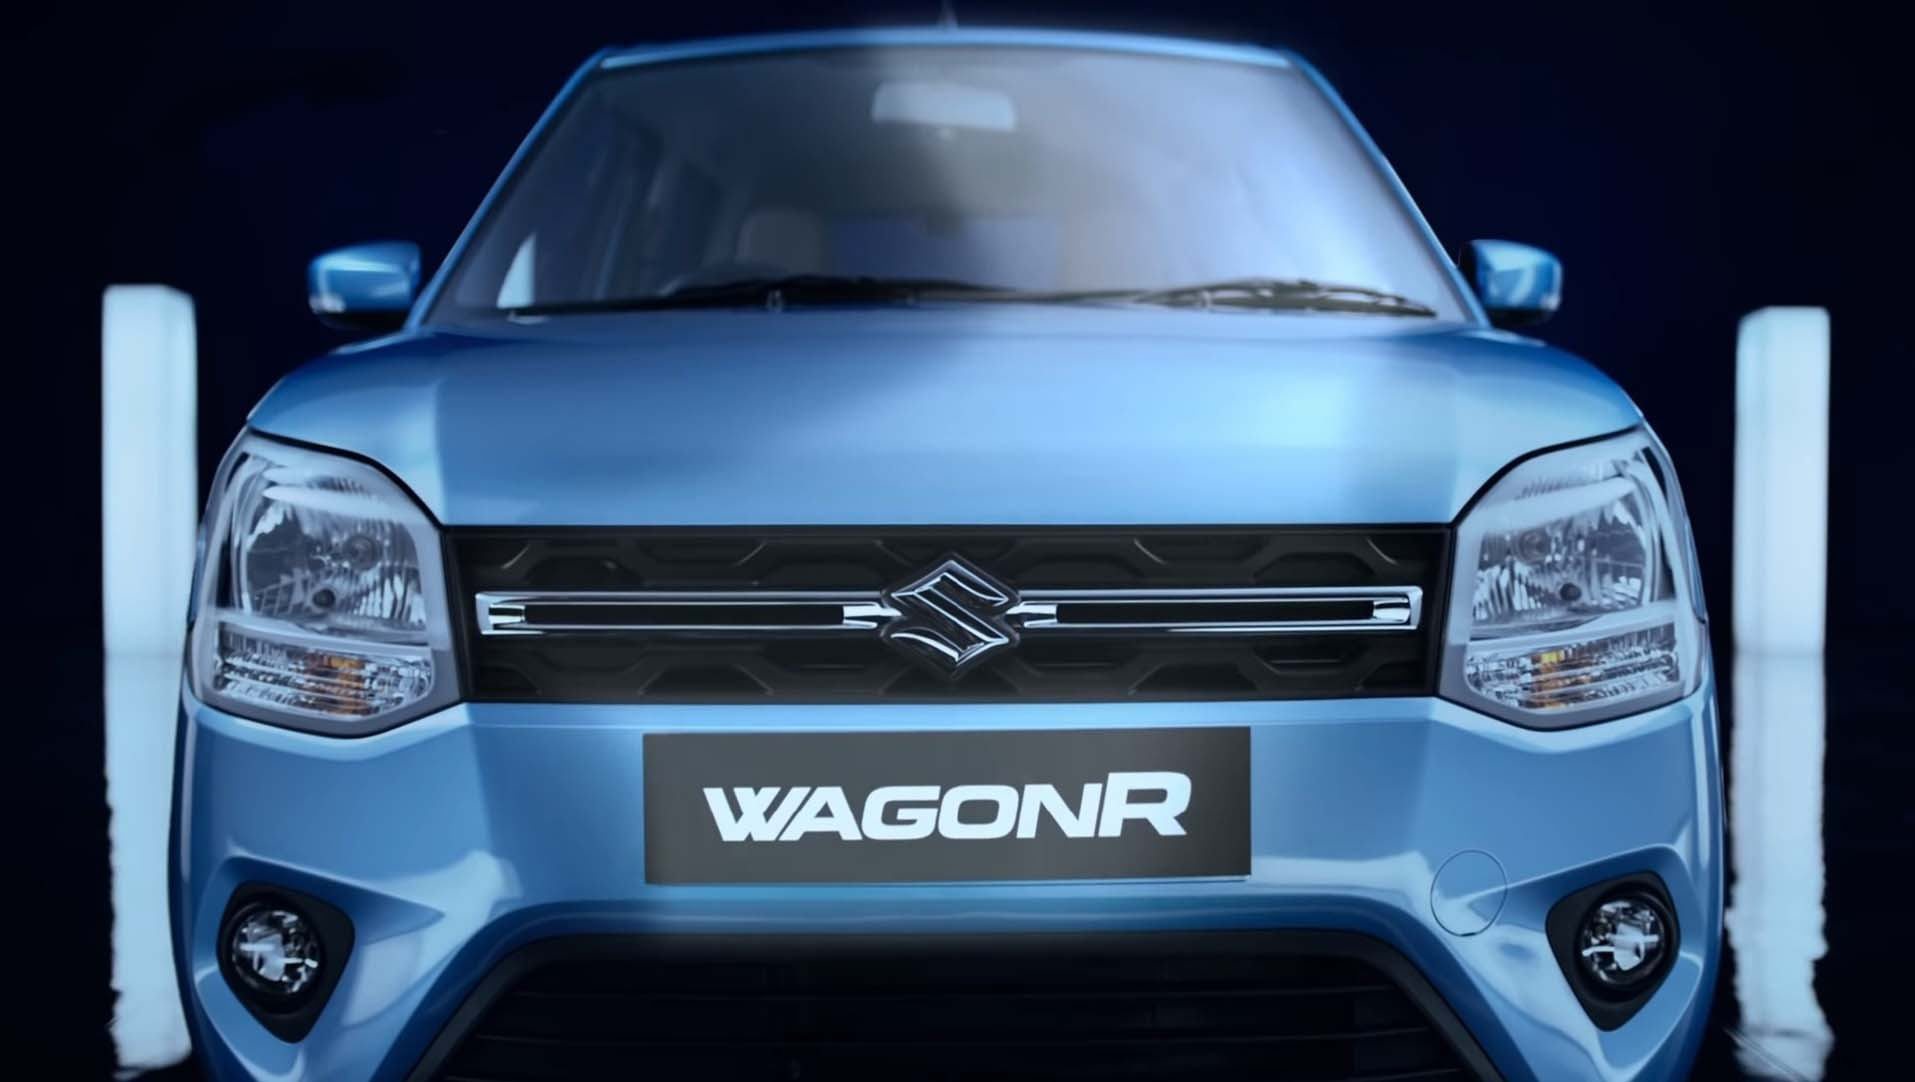 https://iciciauto.com/storage/upload/model_images/Maruti Wagon R - Front View.jpg